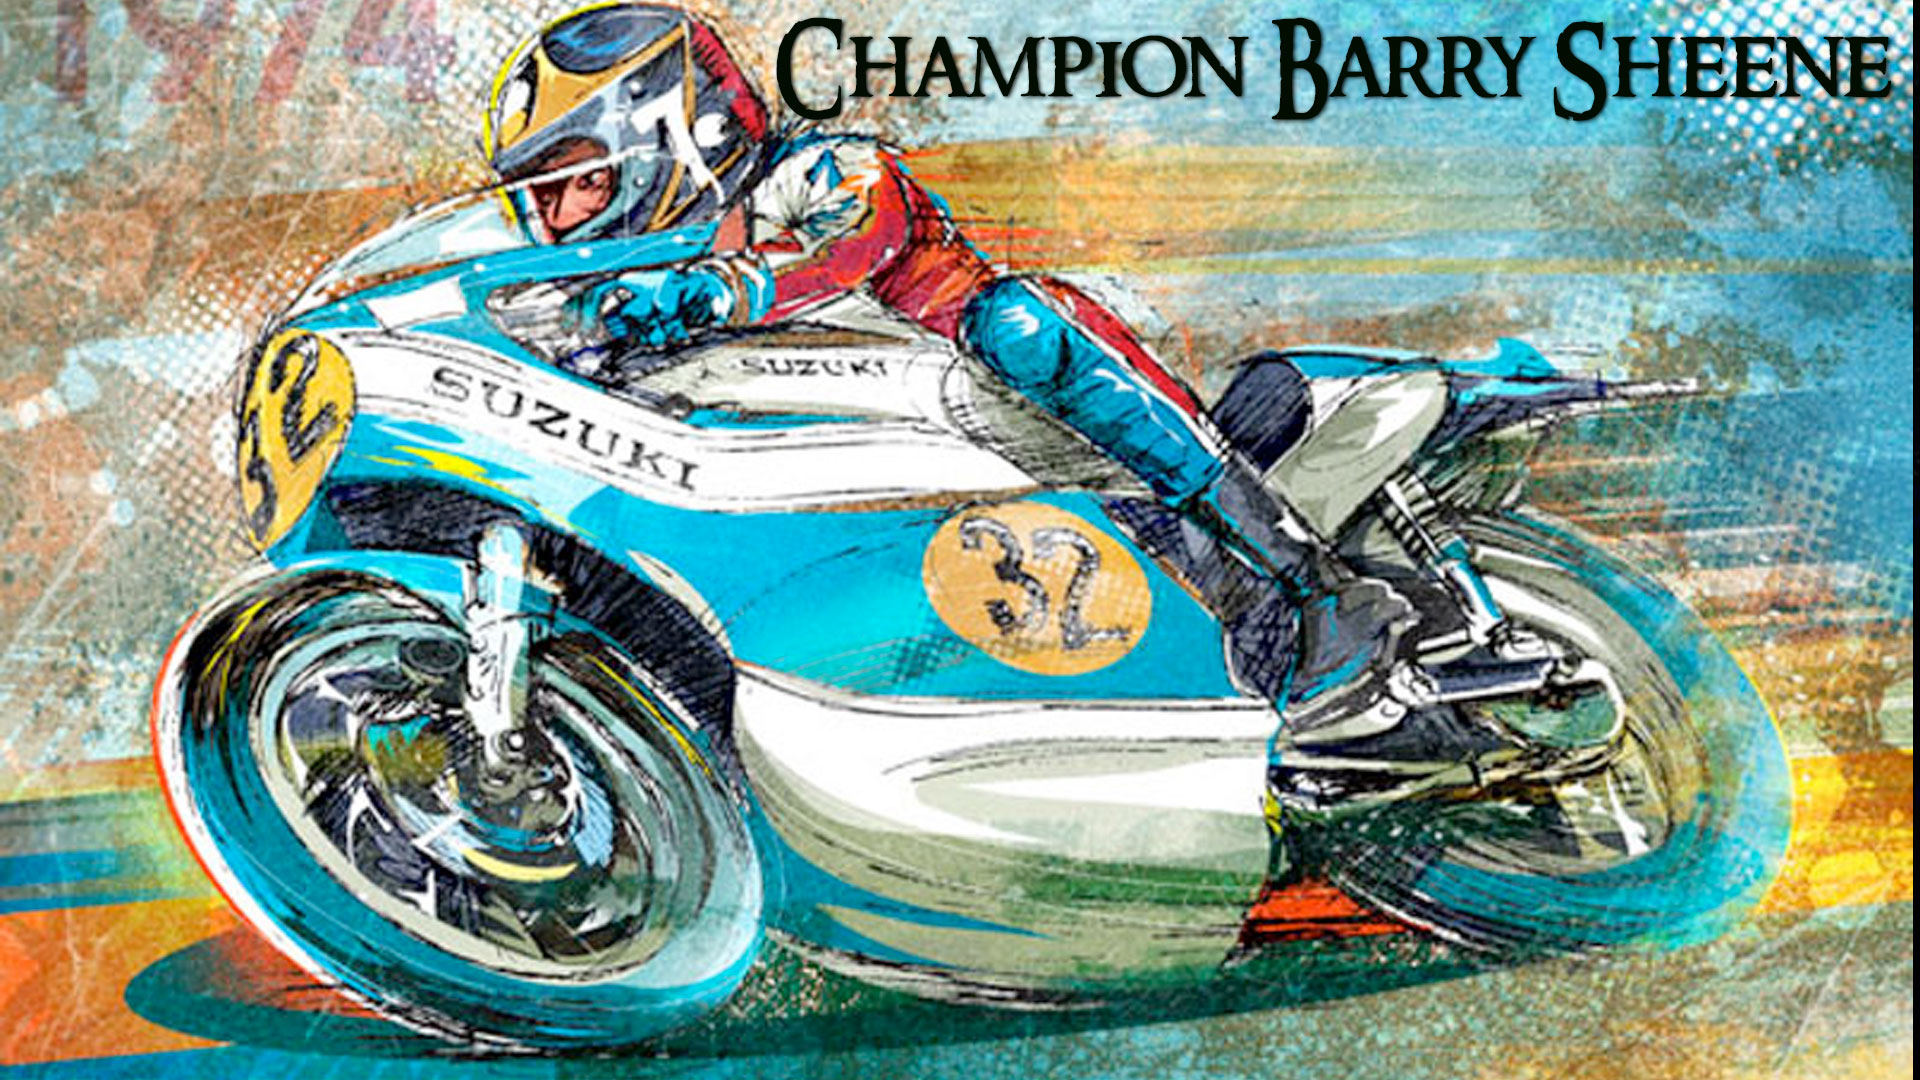 Champion Barry Sheene: Profile of a Legend